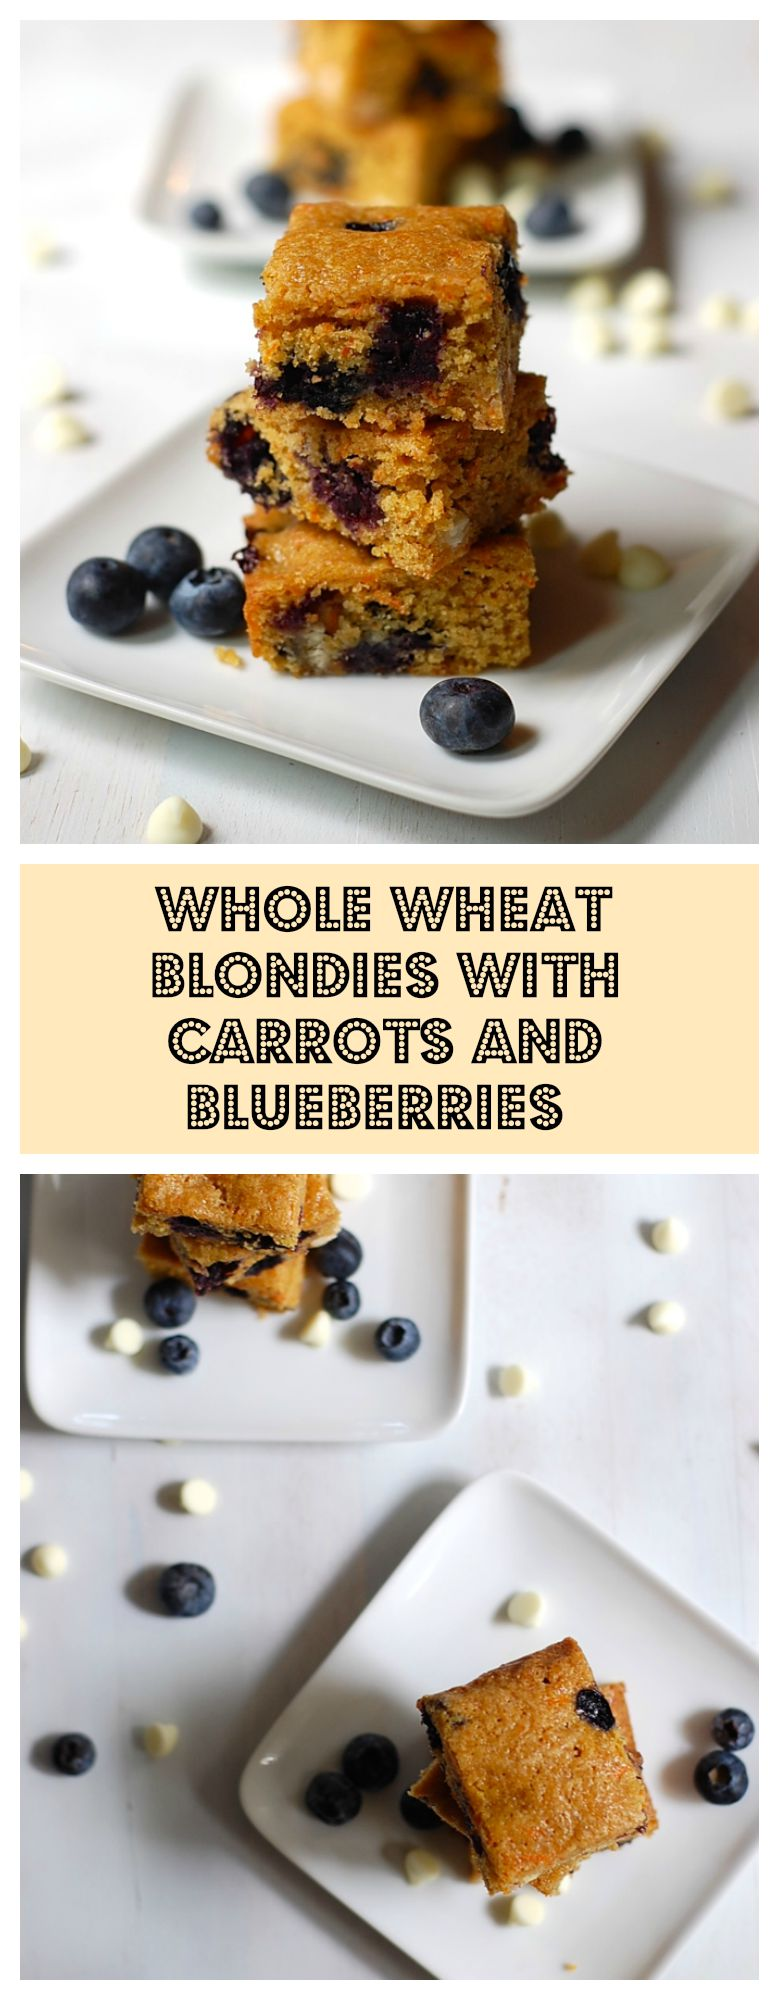 Whole wheat blondies pin